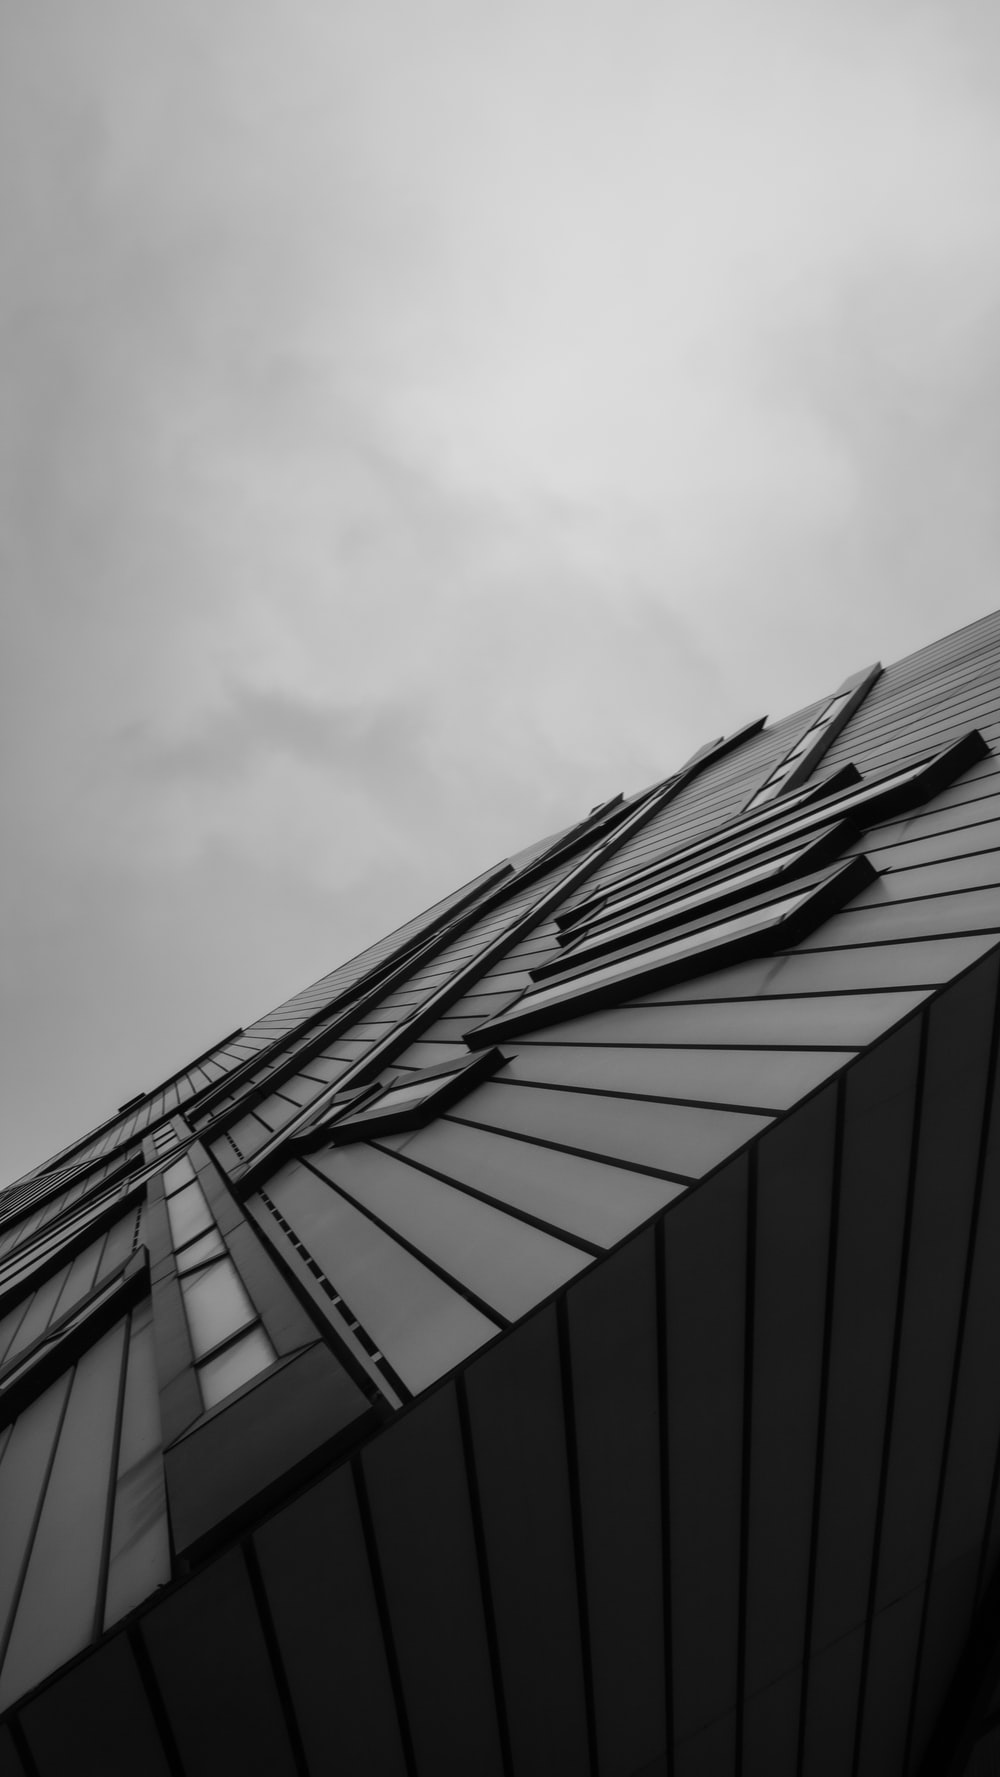 grayscale photo of a building